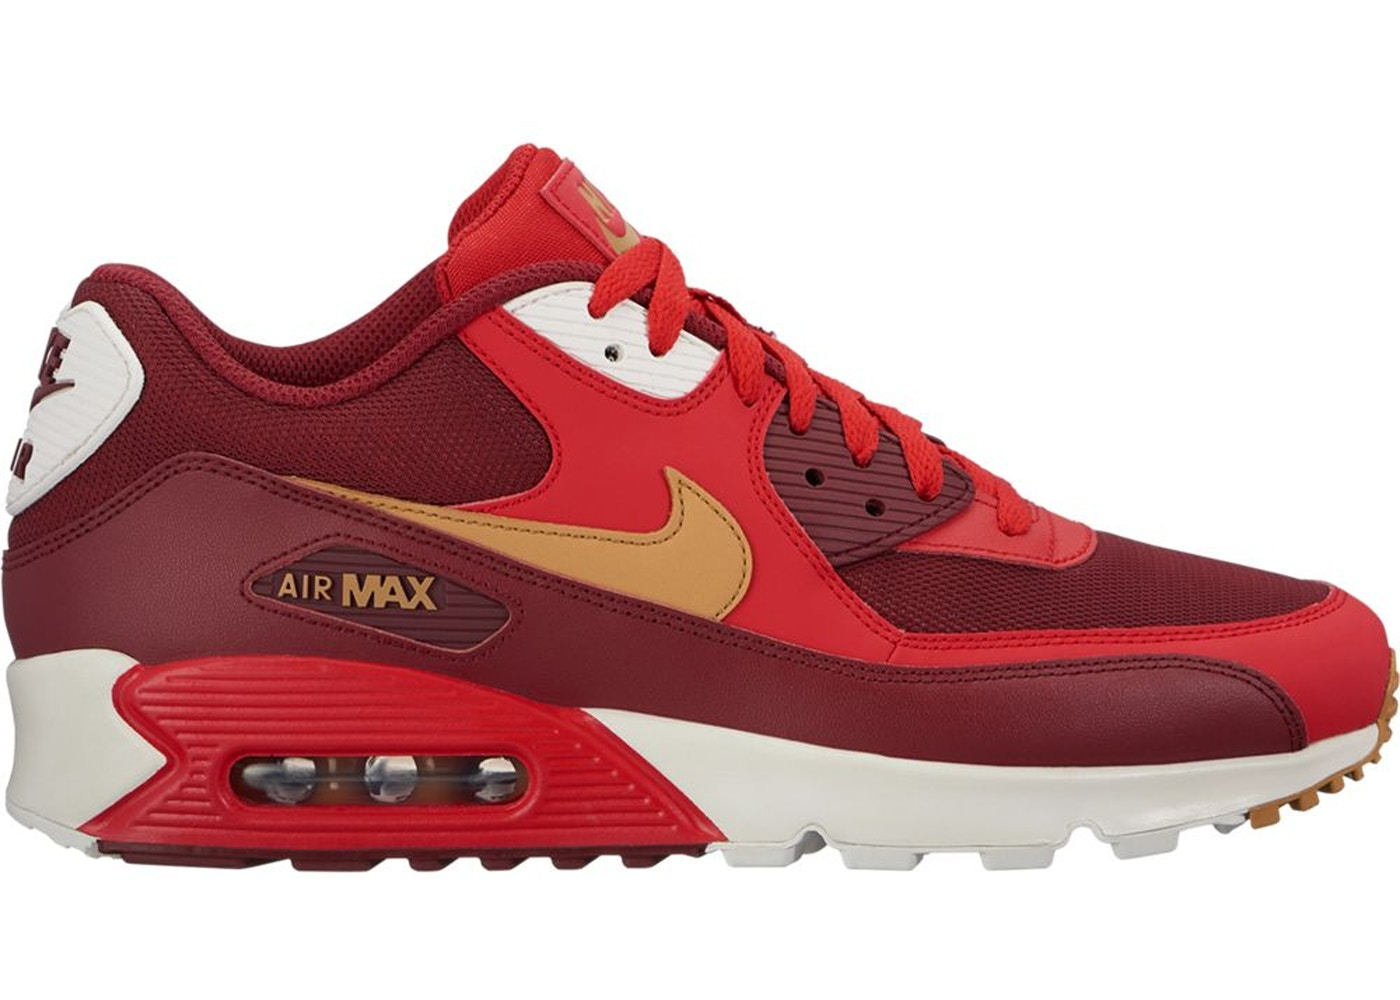 a8622852aa6 Sell. or Ask. Size  13. View All Bids. Air Max 90 Game Red Elemental Gold